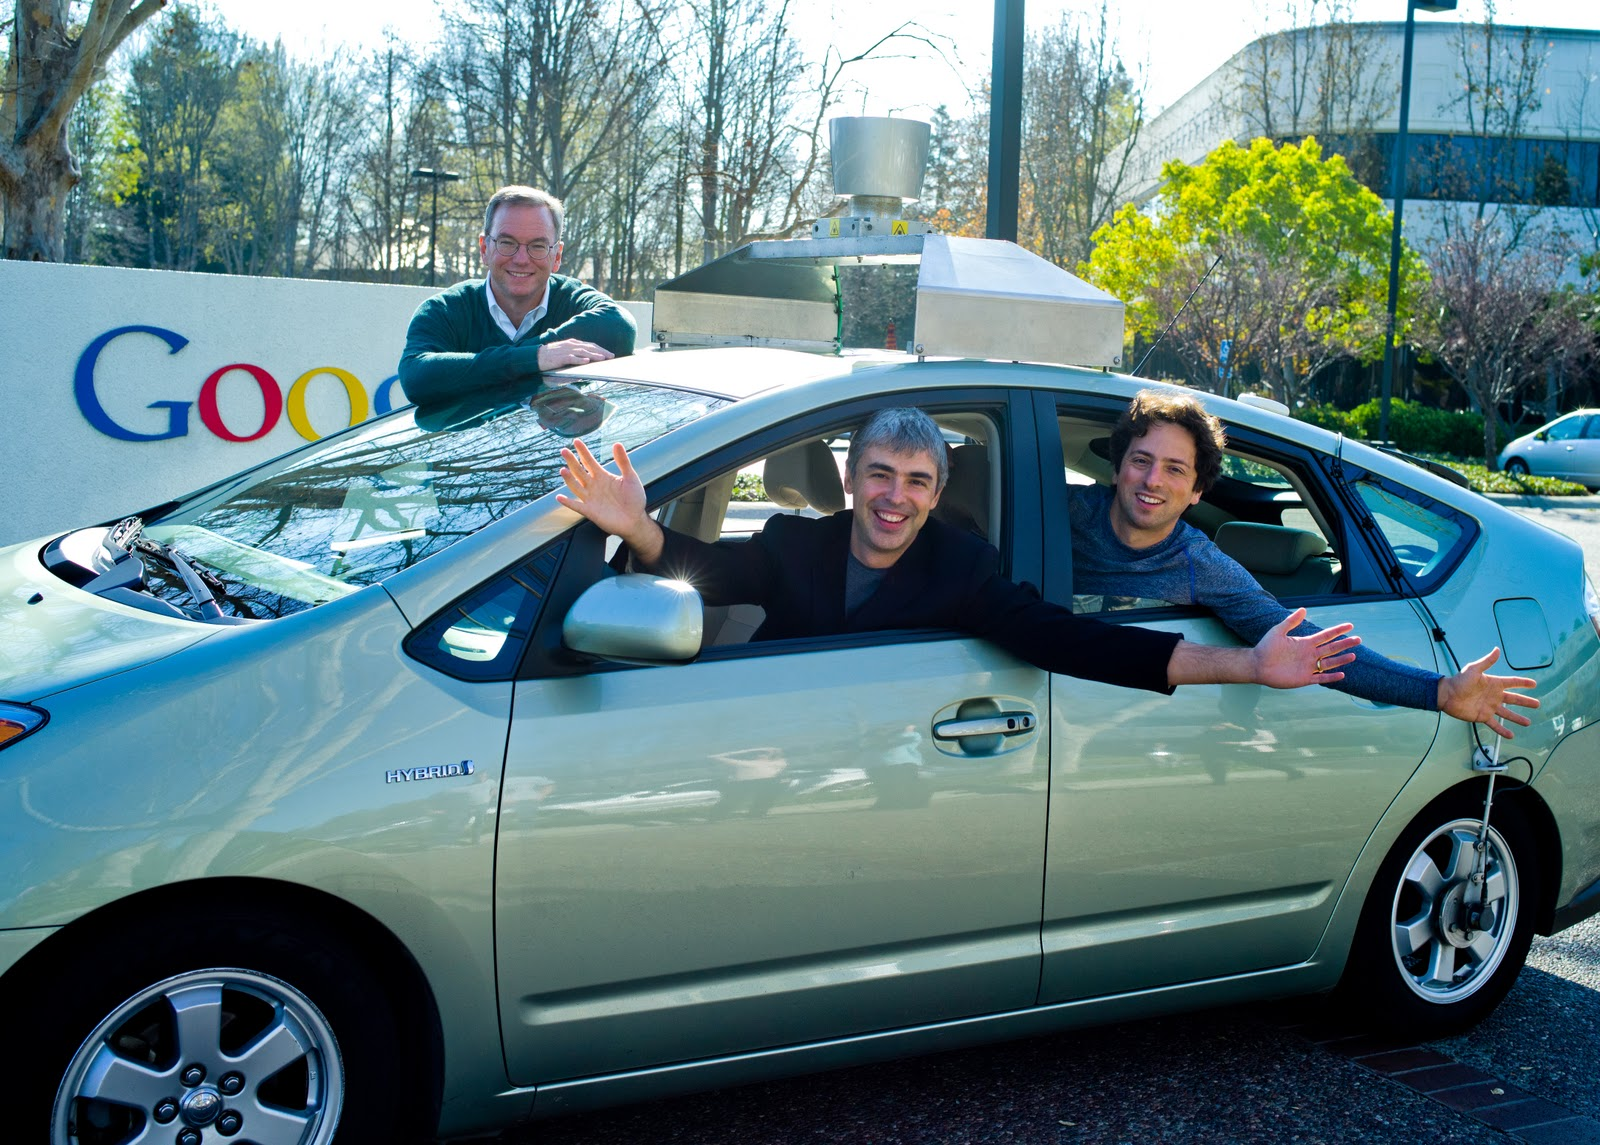 Google co-founders Larry Page, left, and Sergey Brin, inside a Google self-driving car, with former Chief Executive Eric Schmidt standing behind. The self-driving cars are reportedly part of Google X, a collection of advanced technology projects.